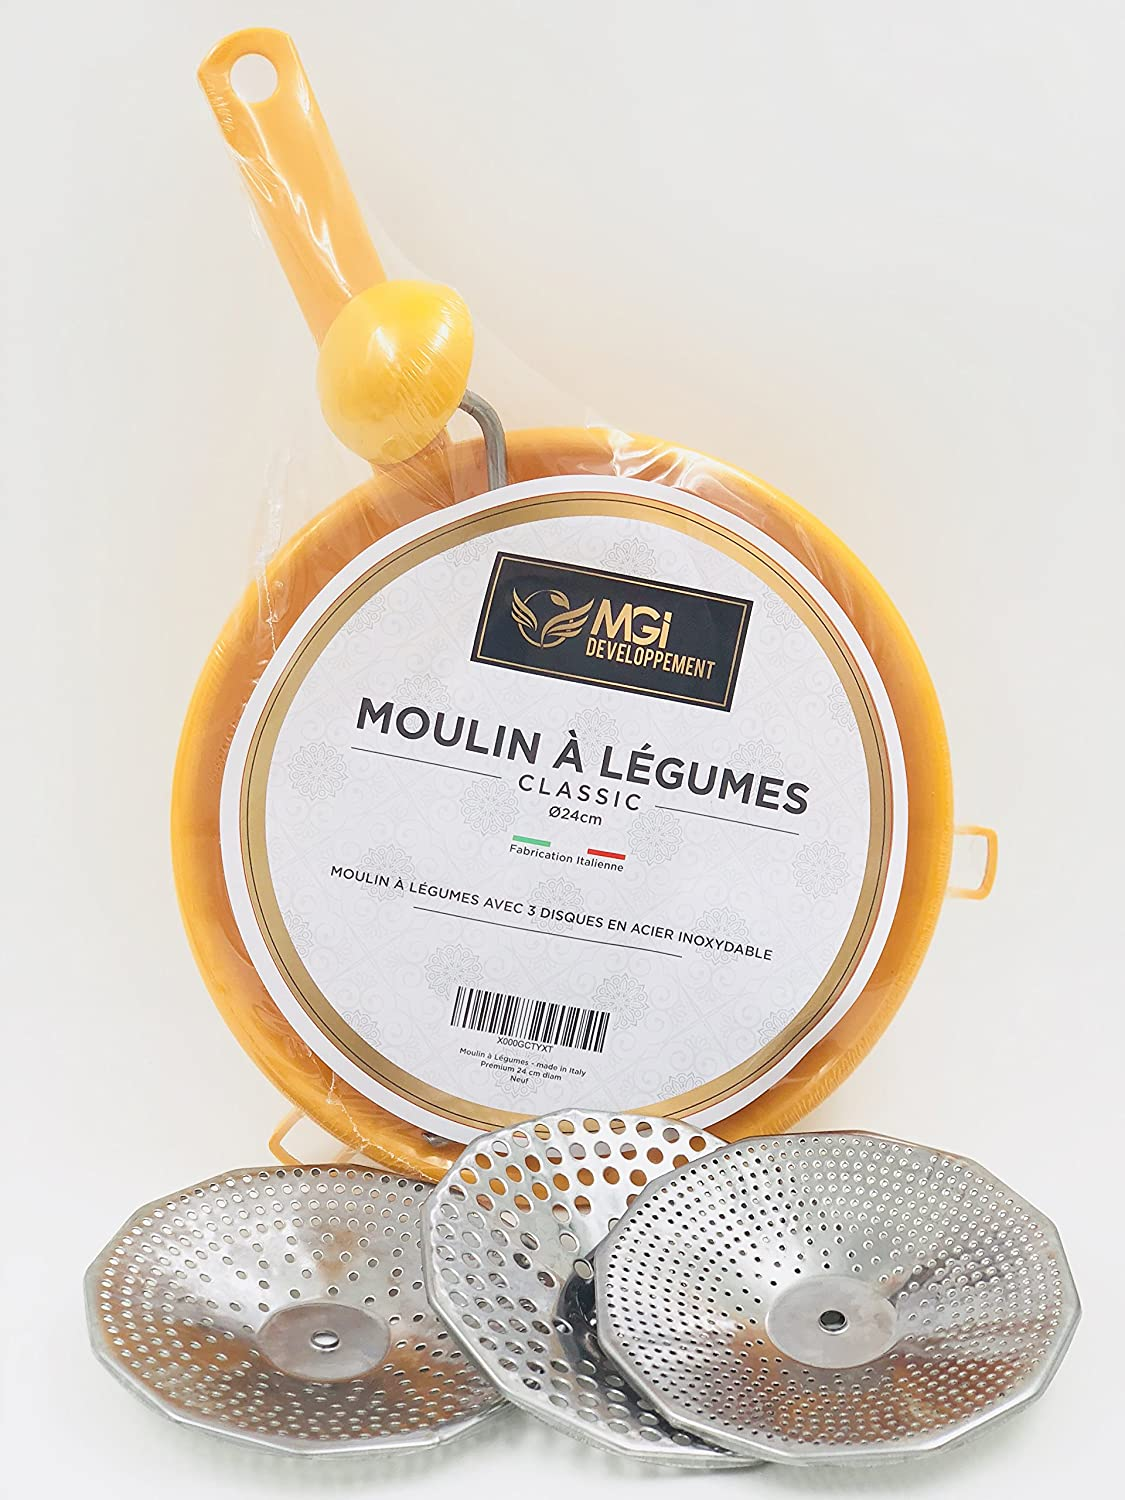 Developpement DiamAmazon Moulin Made In À Italy 24 Cm Mgi Légumes zGSVpqMU